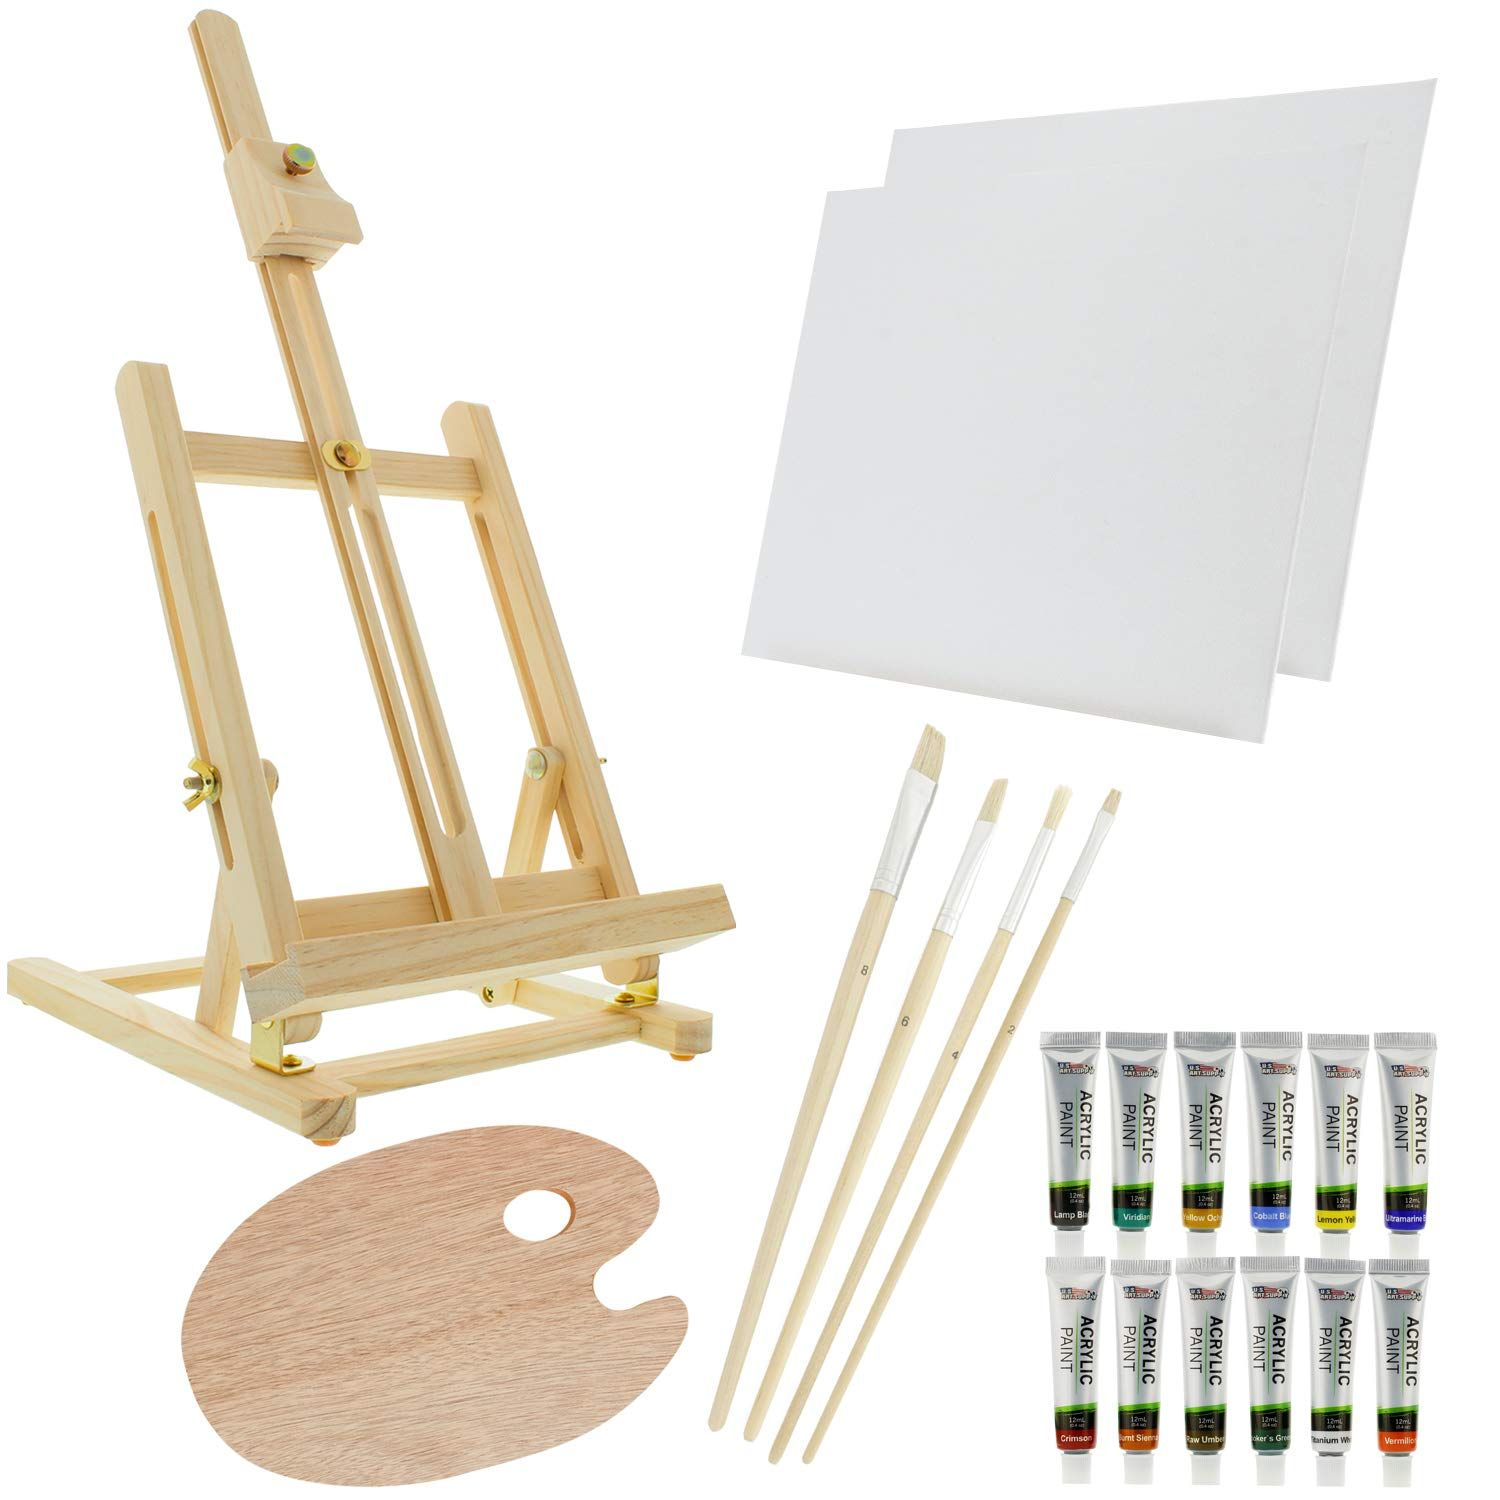 Business Card MEEDEN 48pcs 5 Inch Mini Wooden Easel Small Wood Display Stand for Artist Painting Christmas Decorative Plates and More Displaying Photos